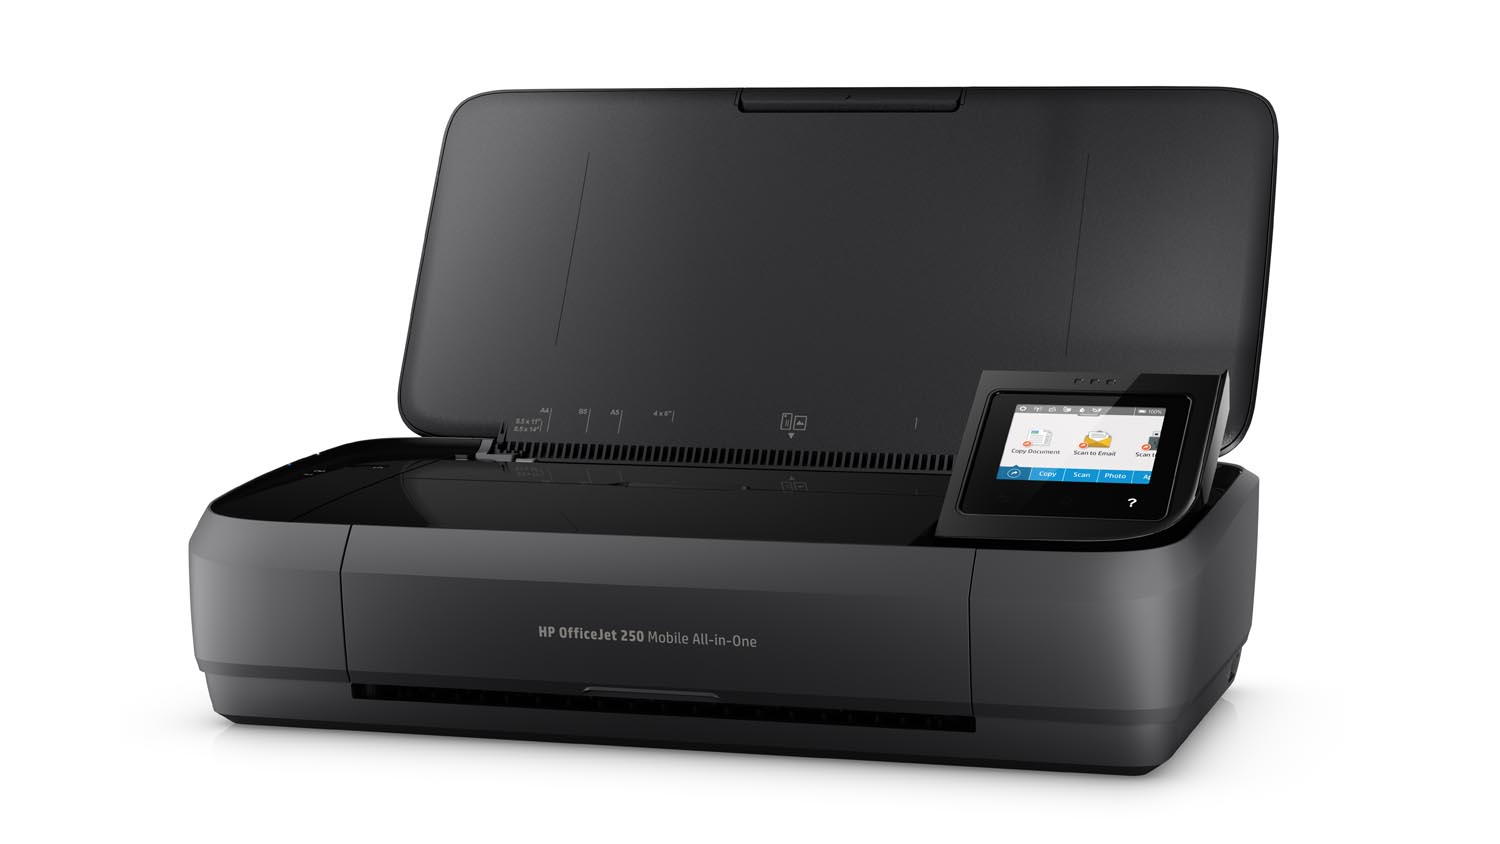 Best printer 2018 The best inkjet and laser printers for office or